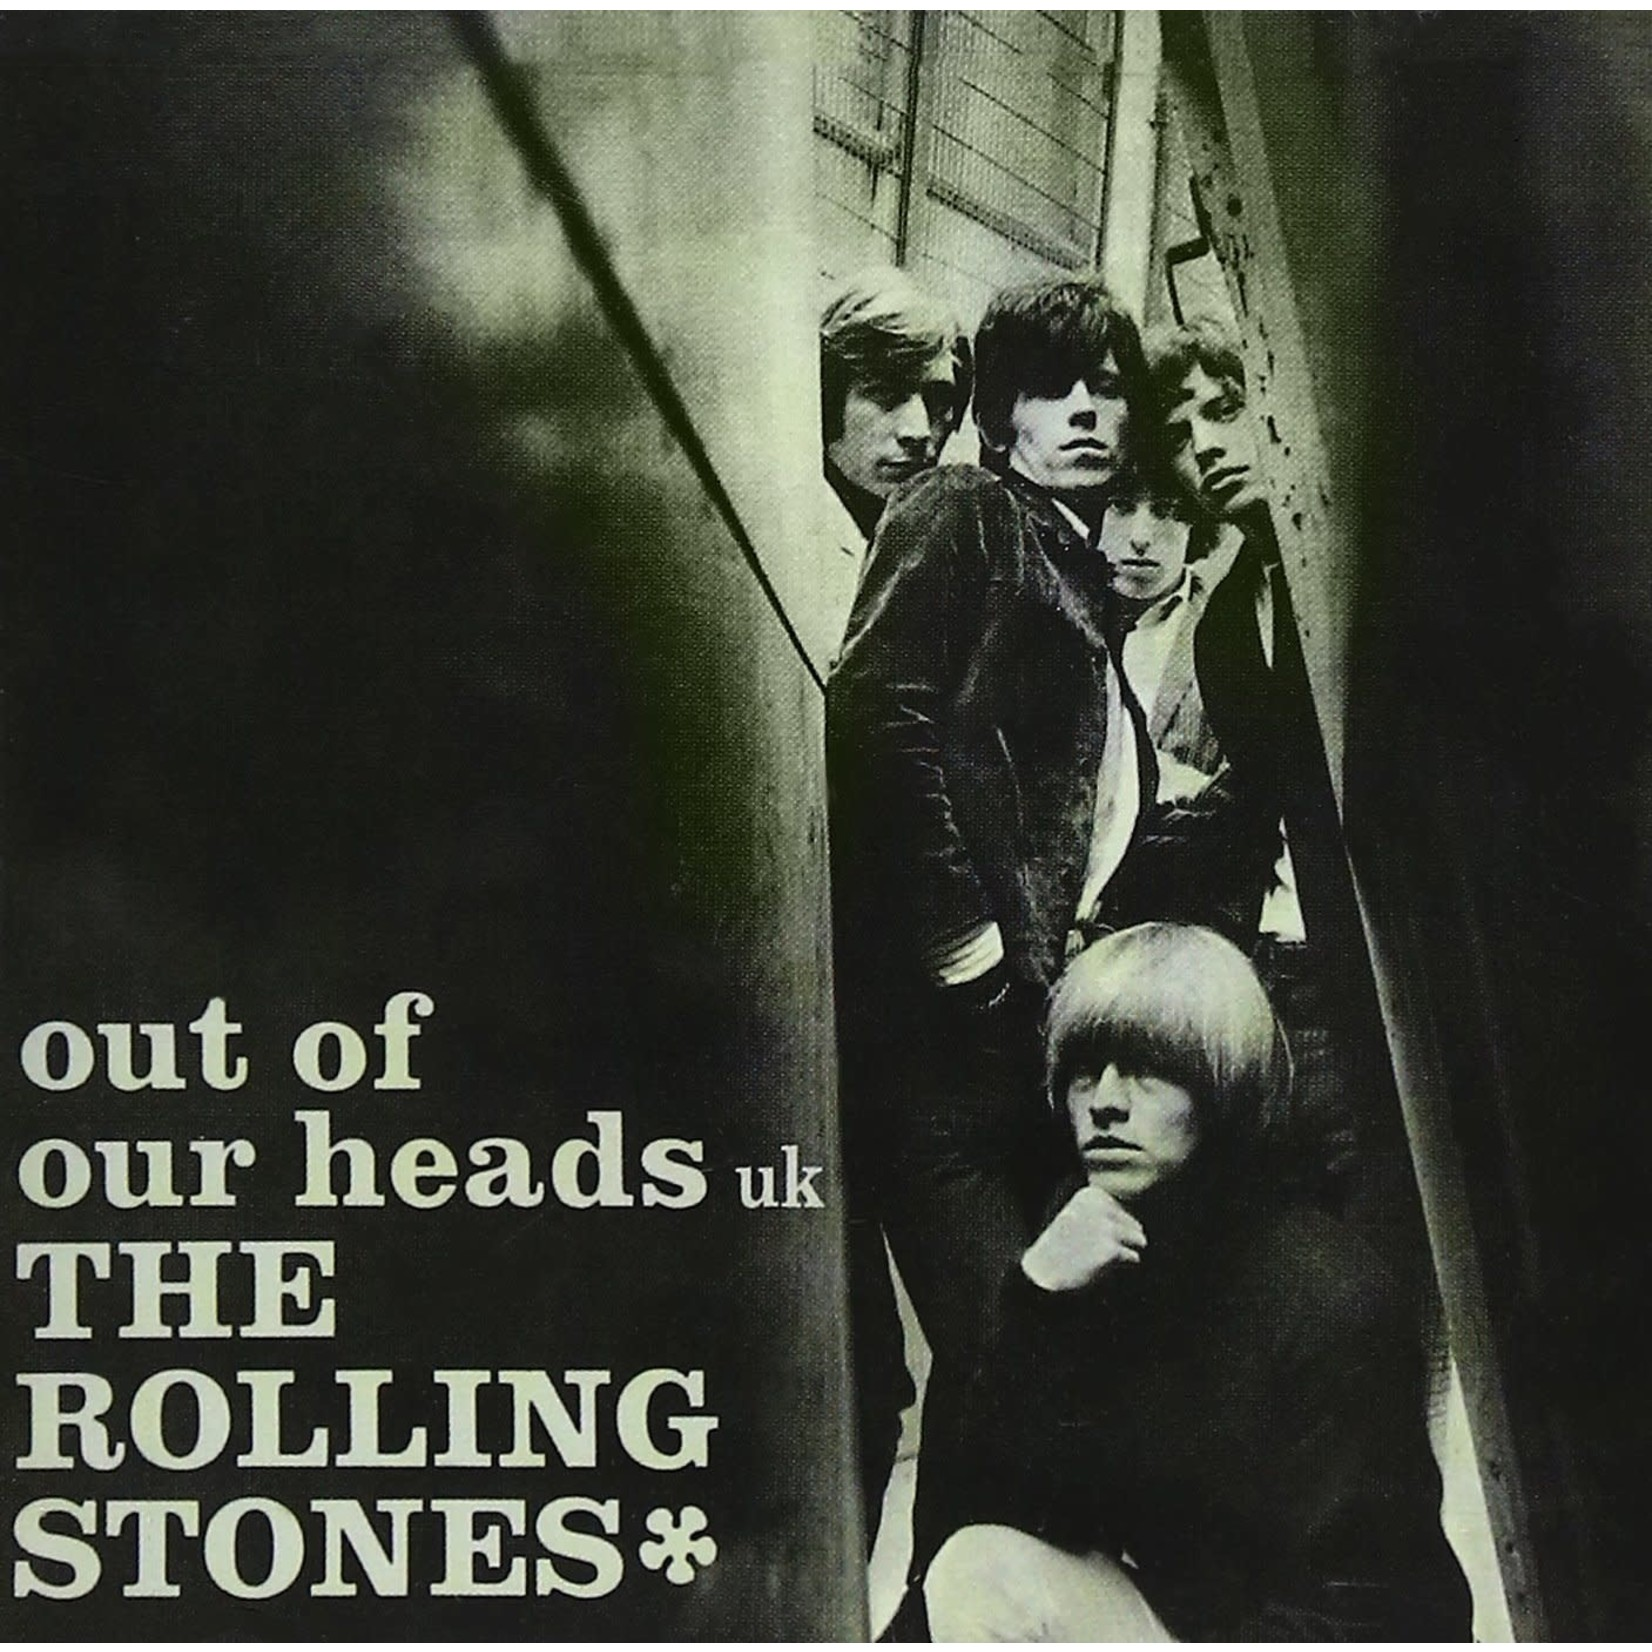 Vinyl The Rolling Stones - Out Of Our Heads  ... UK